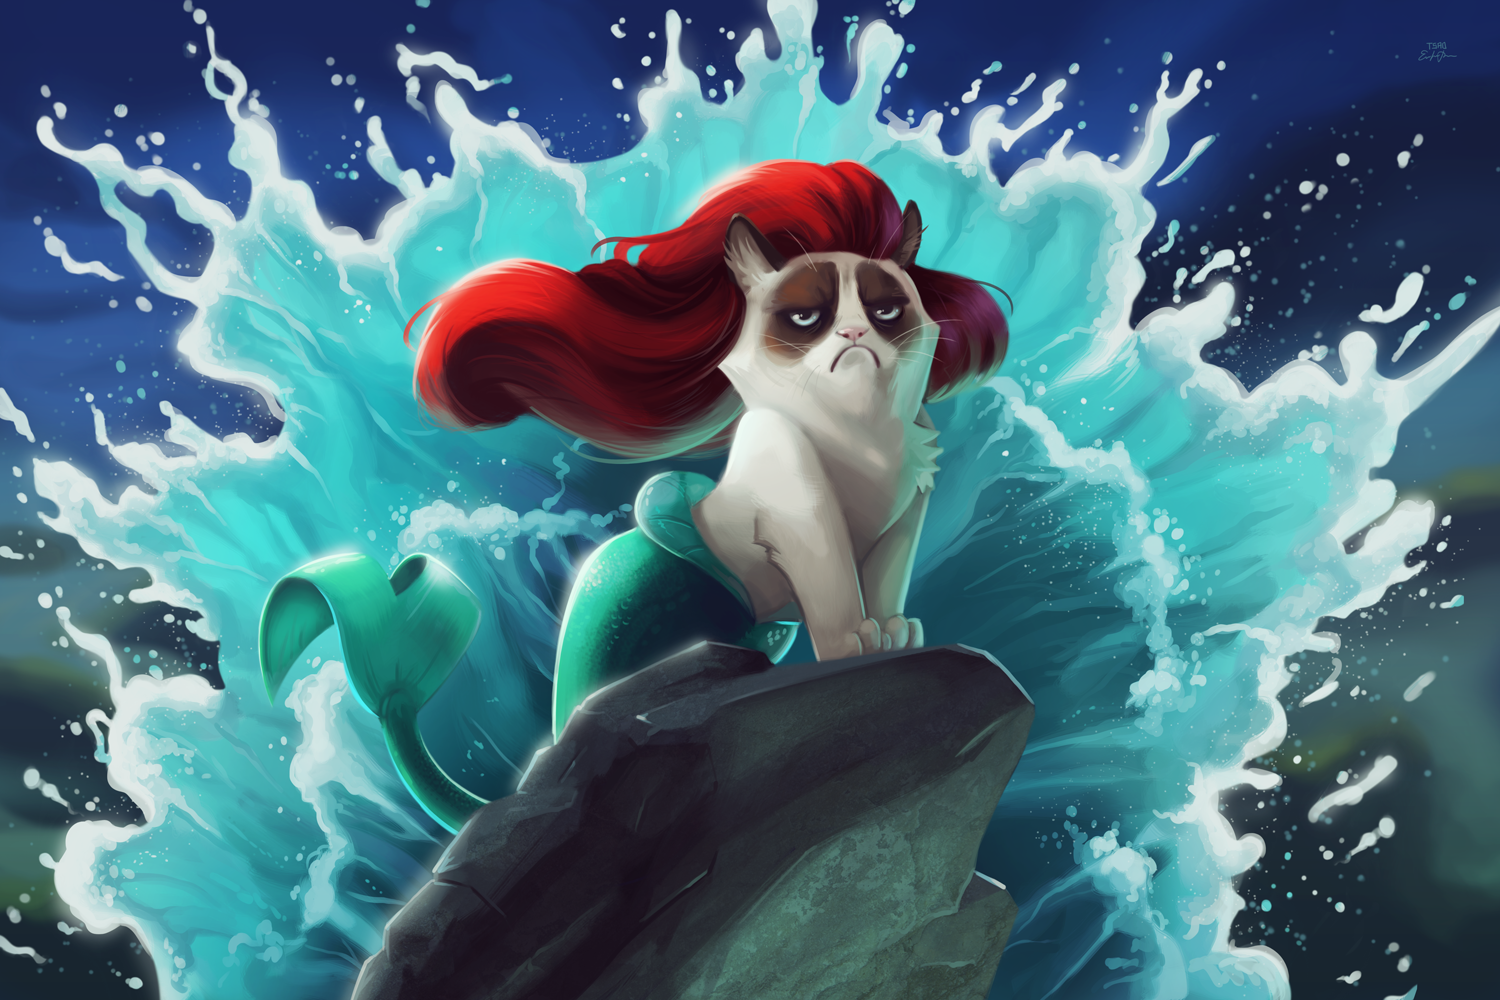 This is What Happens When You Mix Grumpy Cat and Disney Films 1500x1000